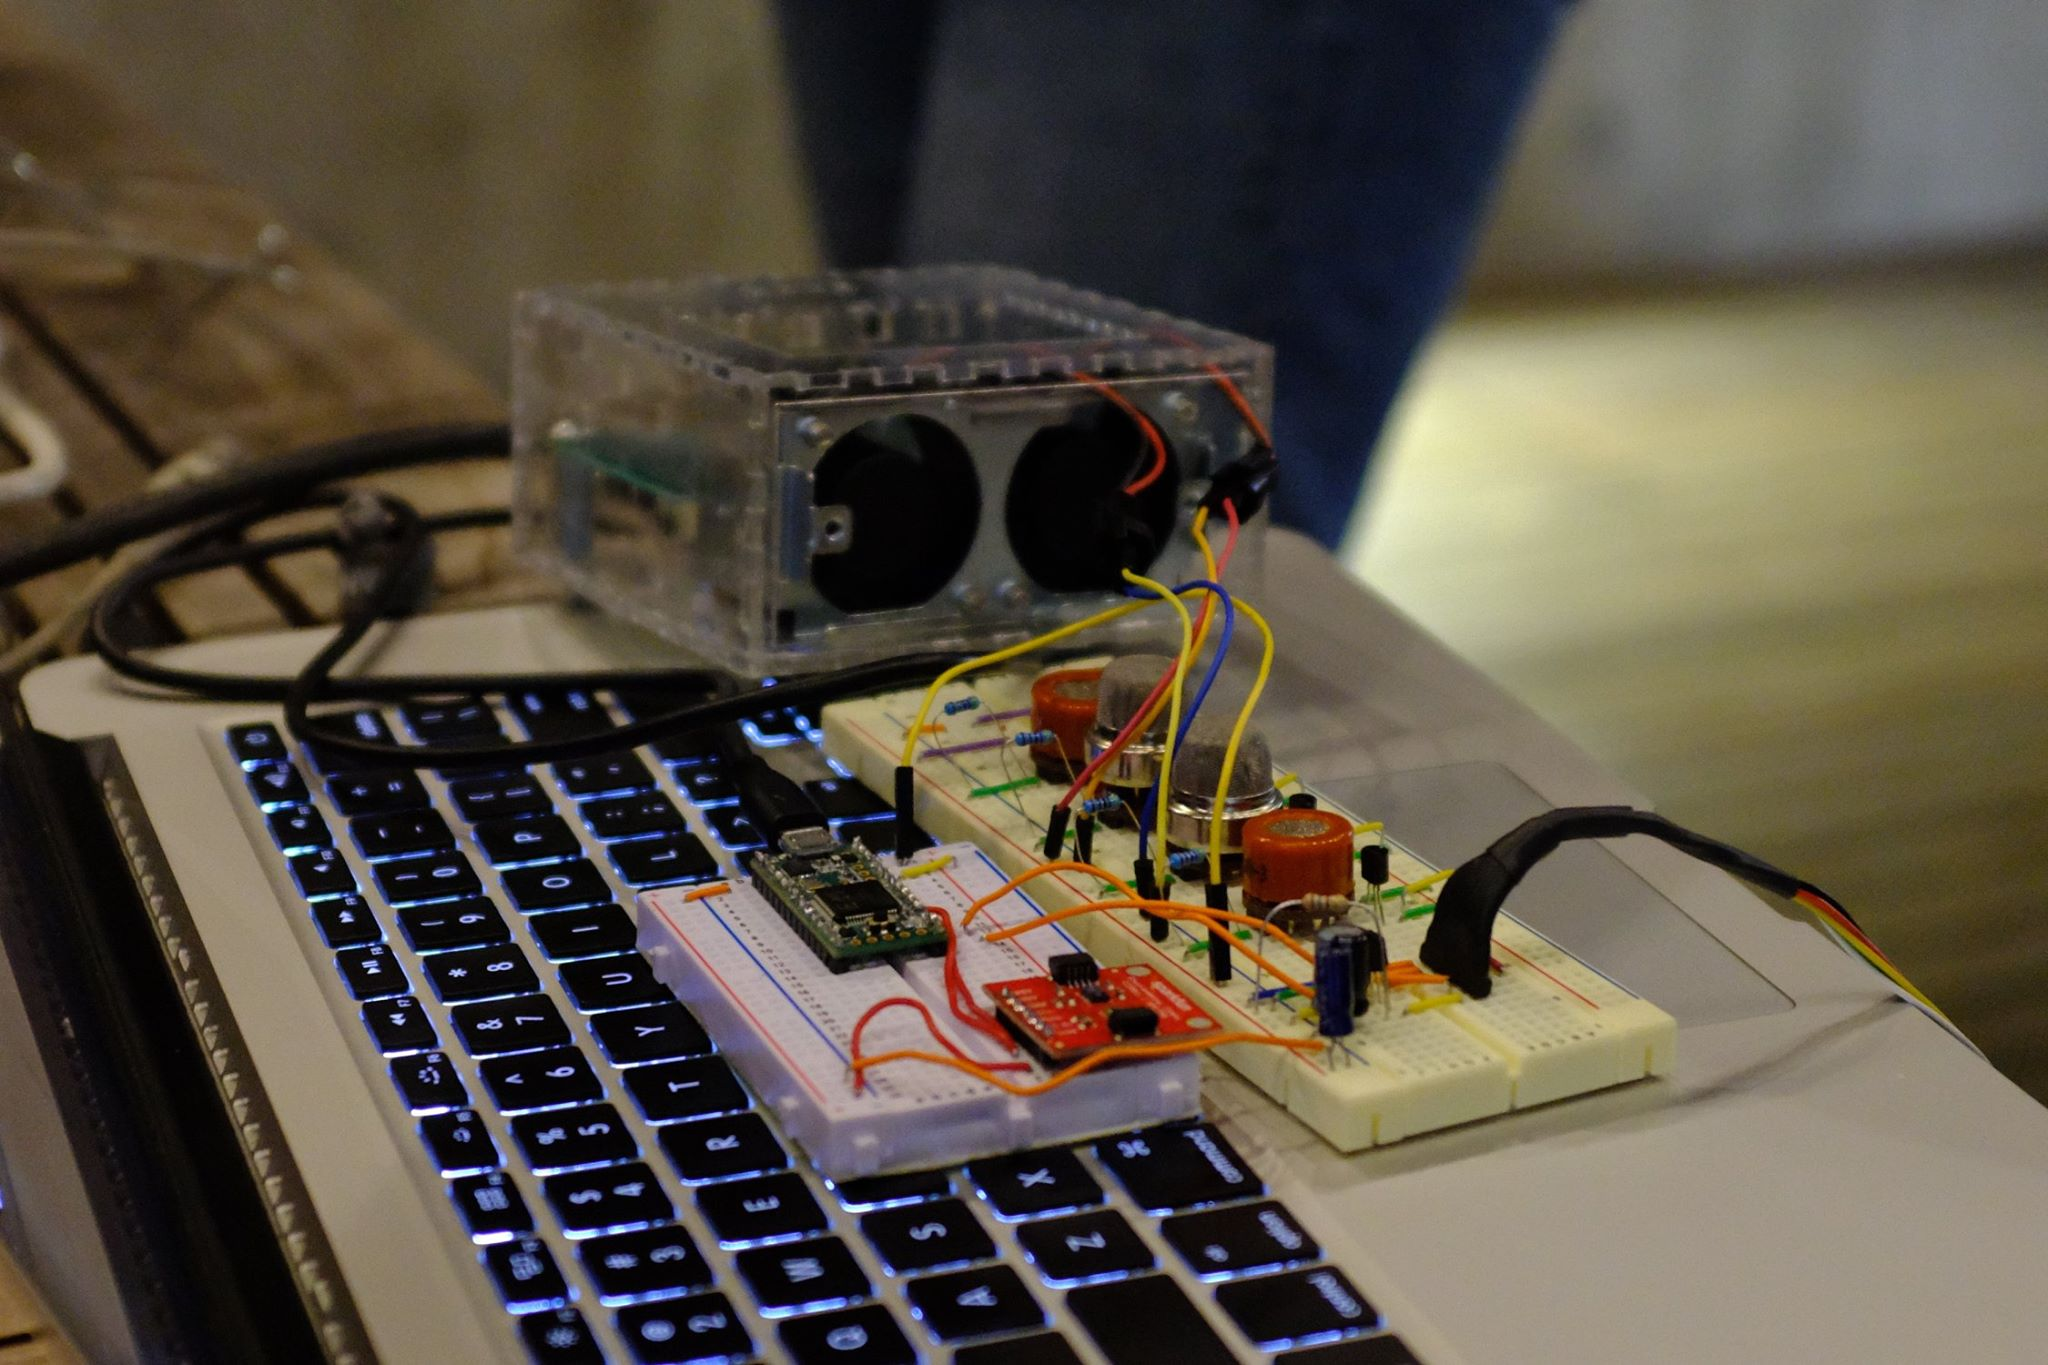 A prototype made with two breadboards